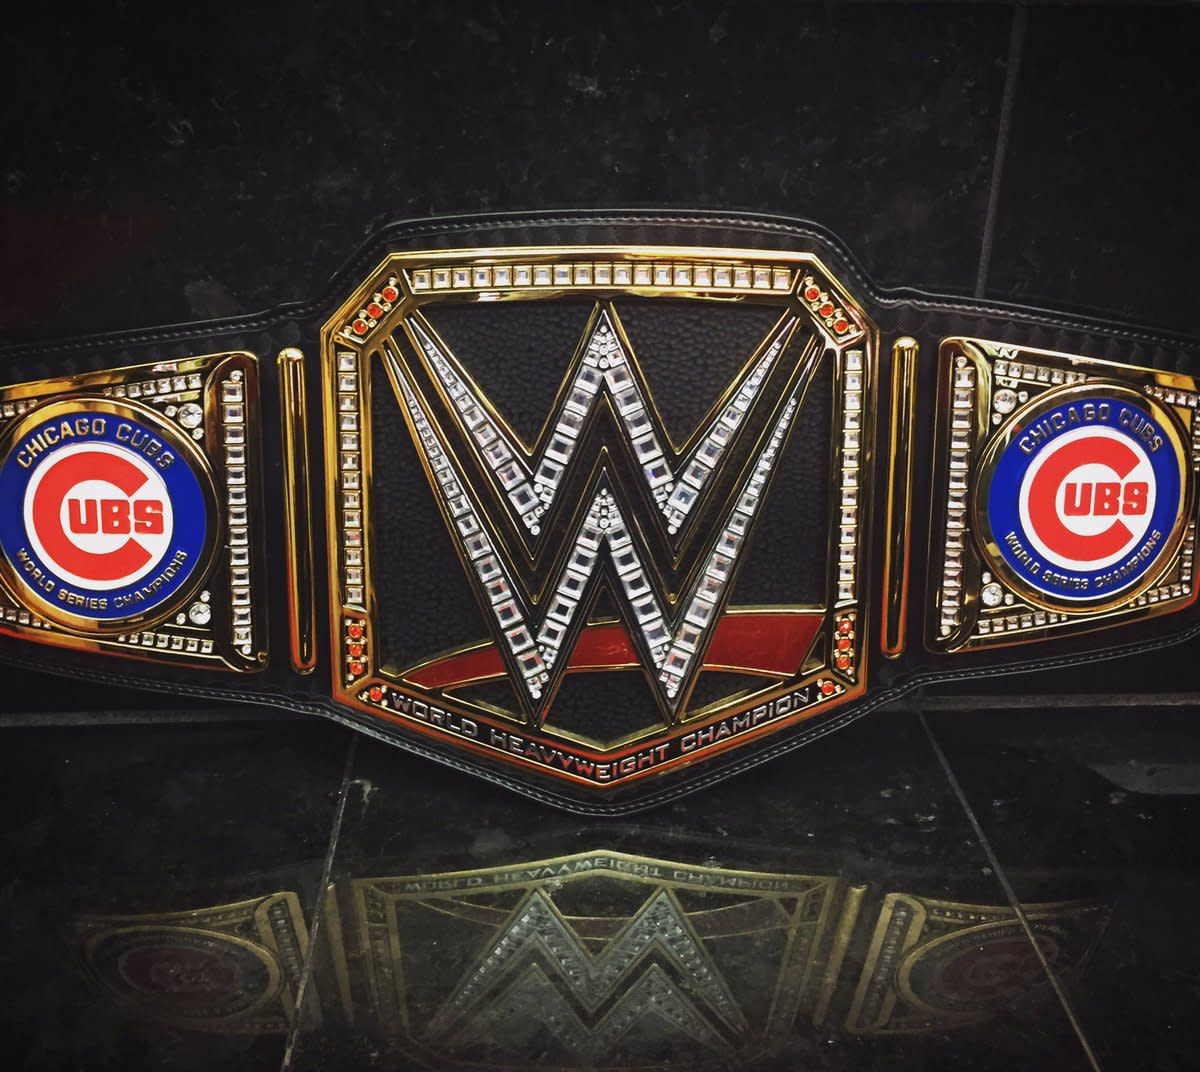 WWE Chicago Cubs